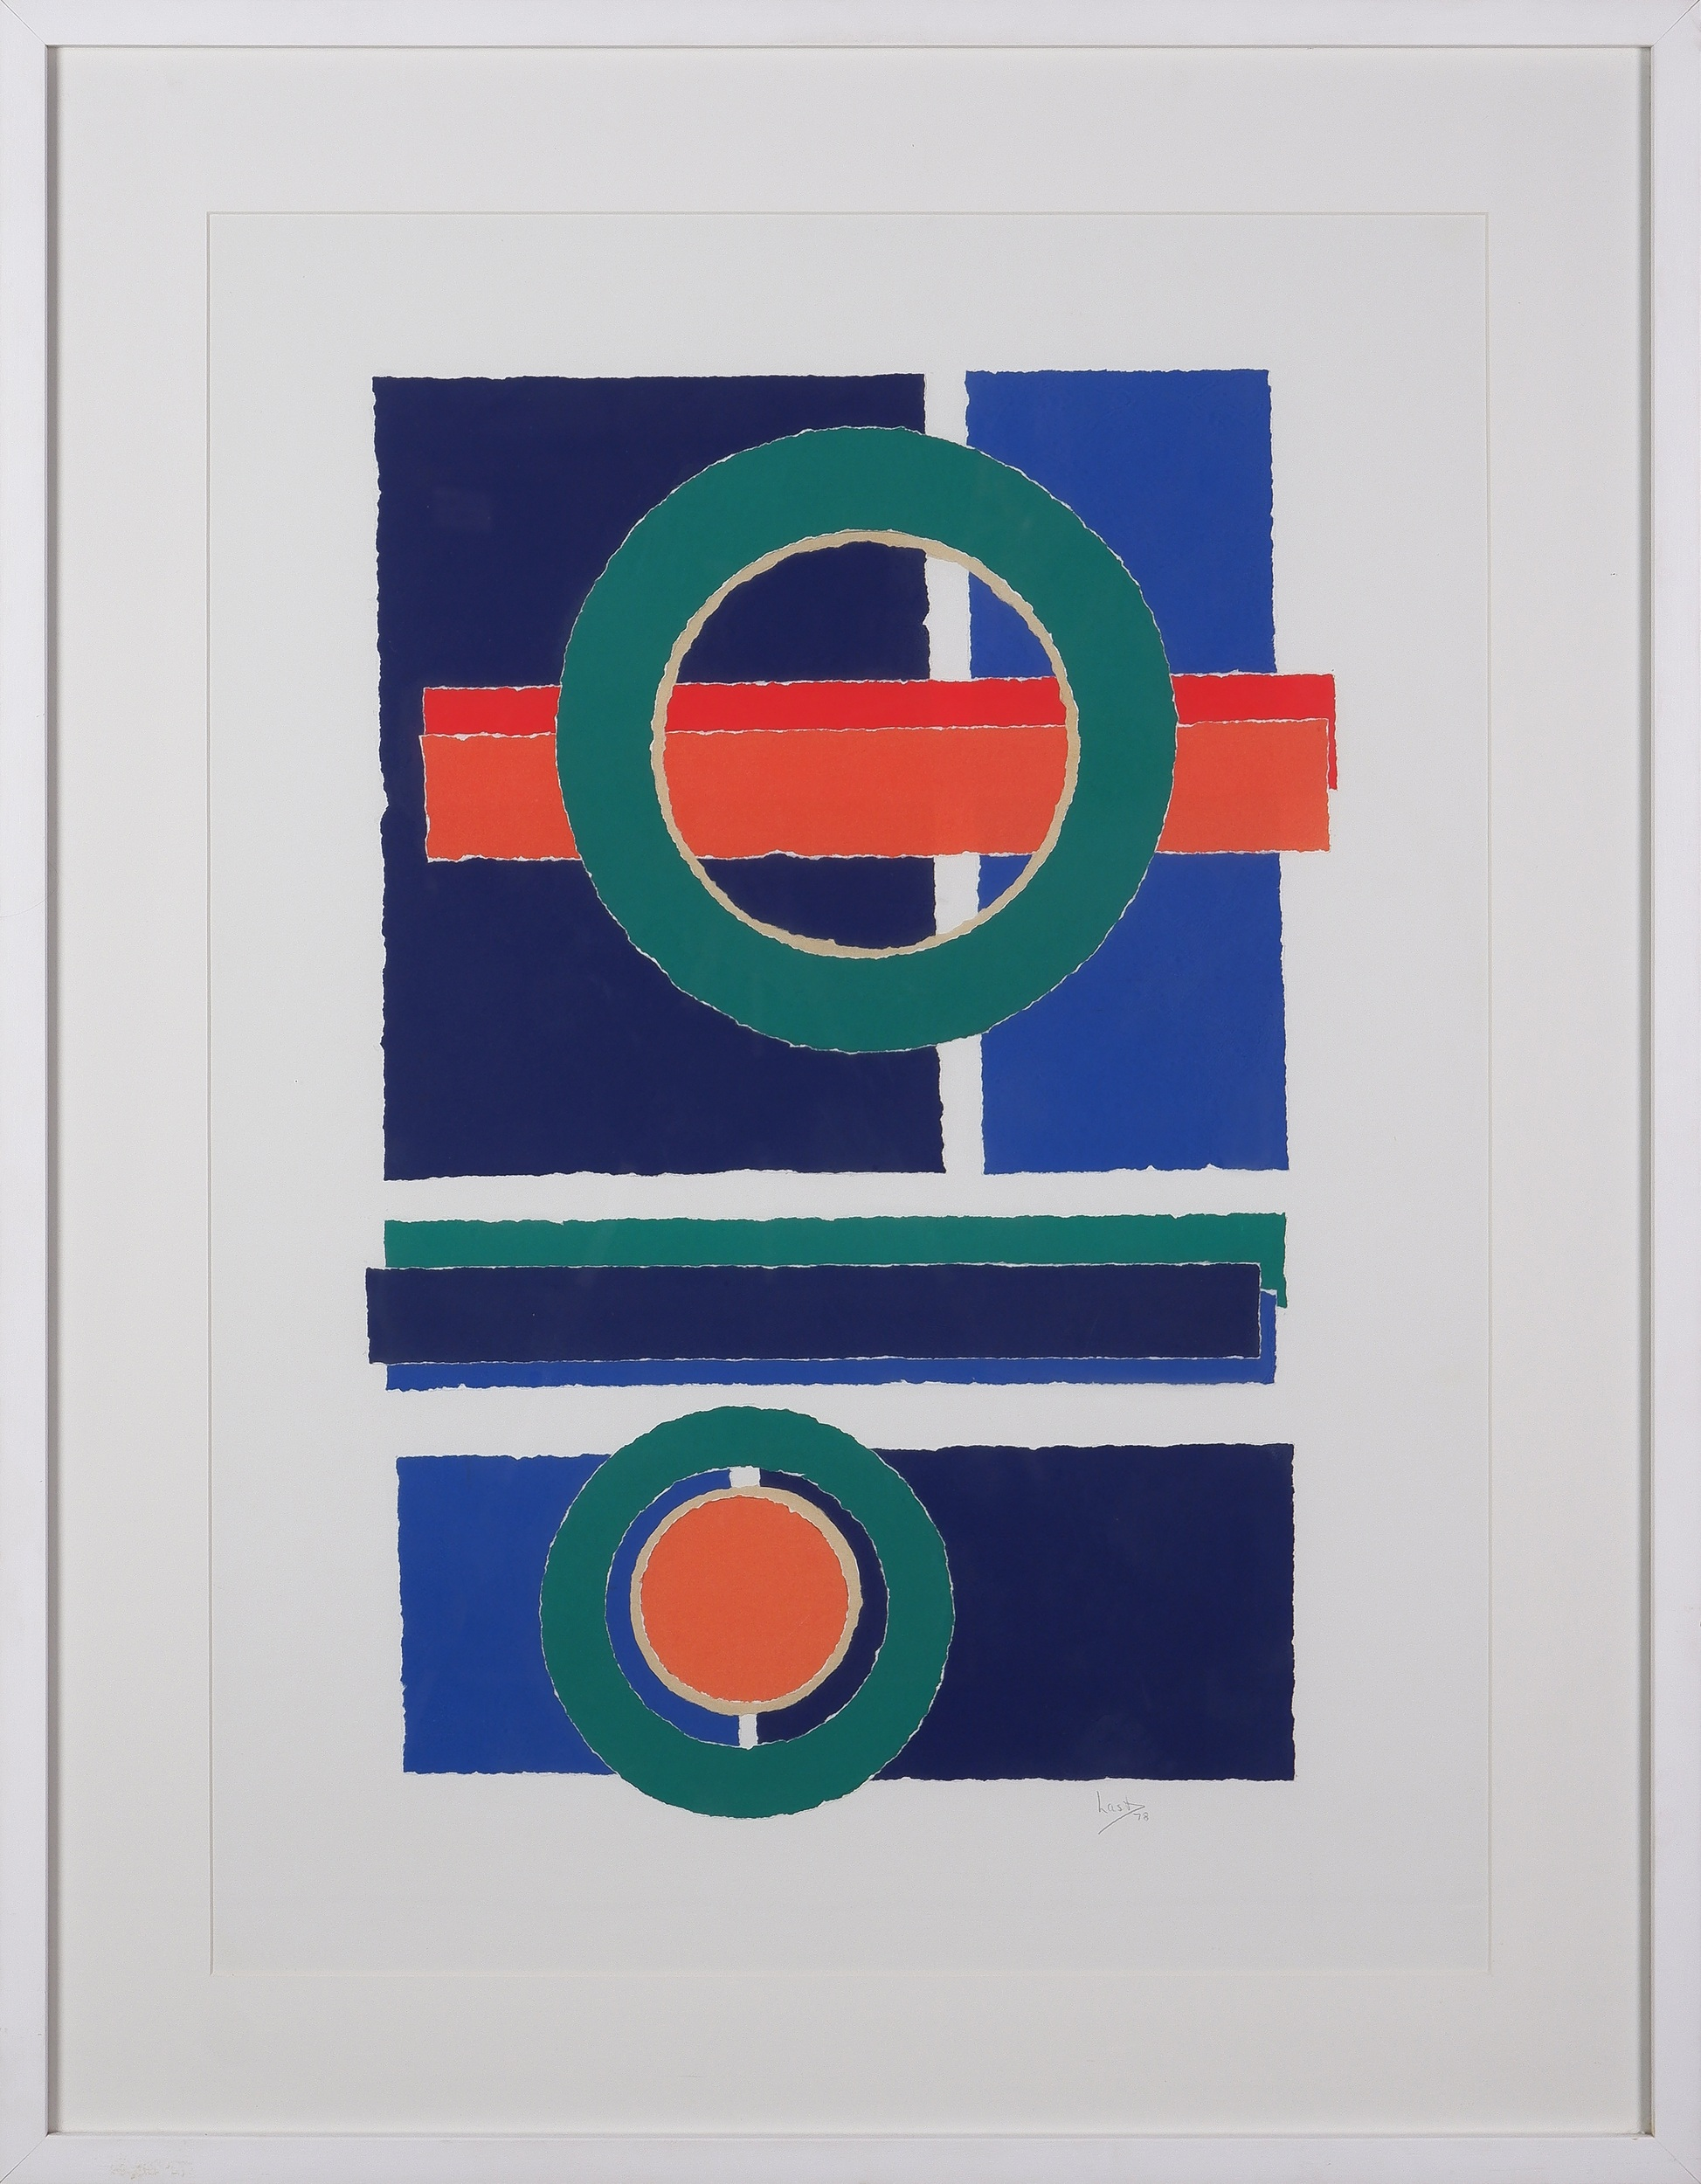 'Clifford Last (1918-1991), Untitled (Circles) 1978, Paper Collage'